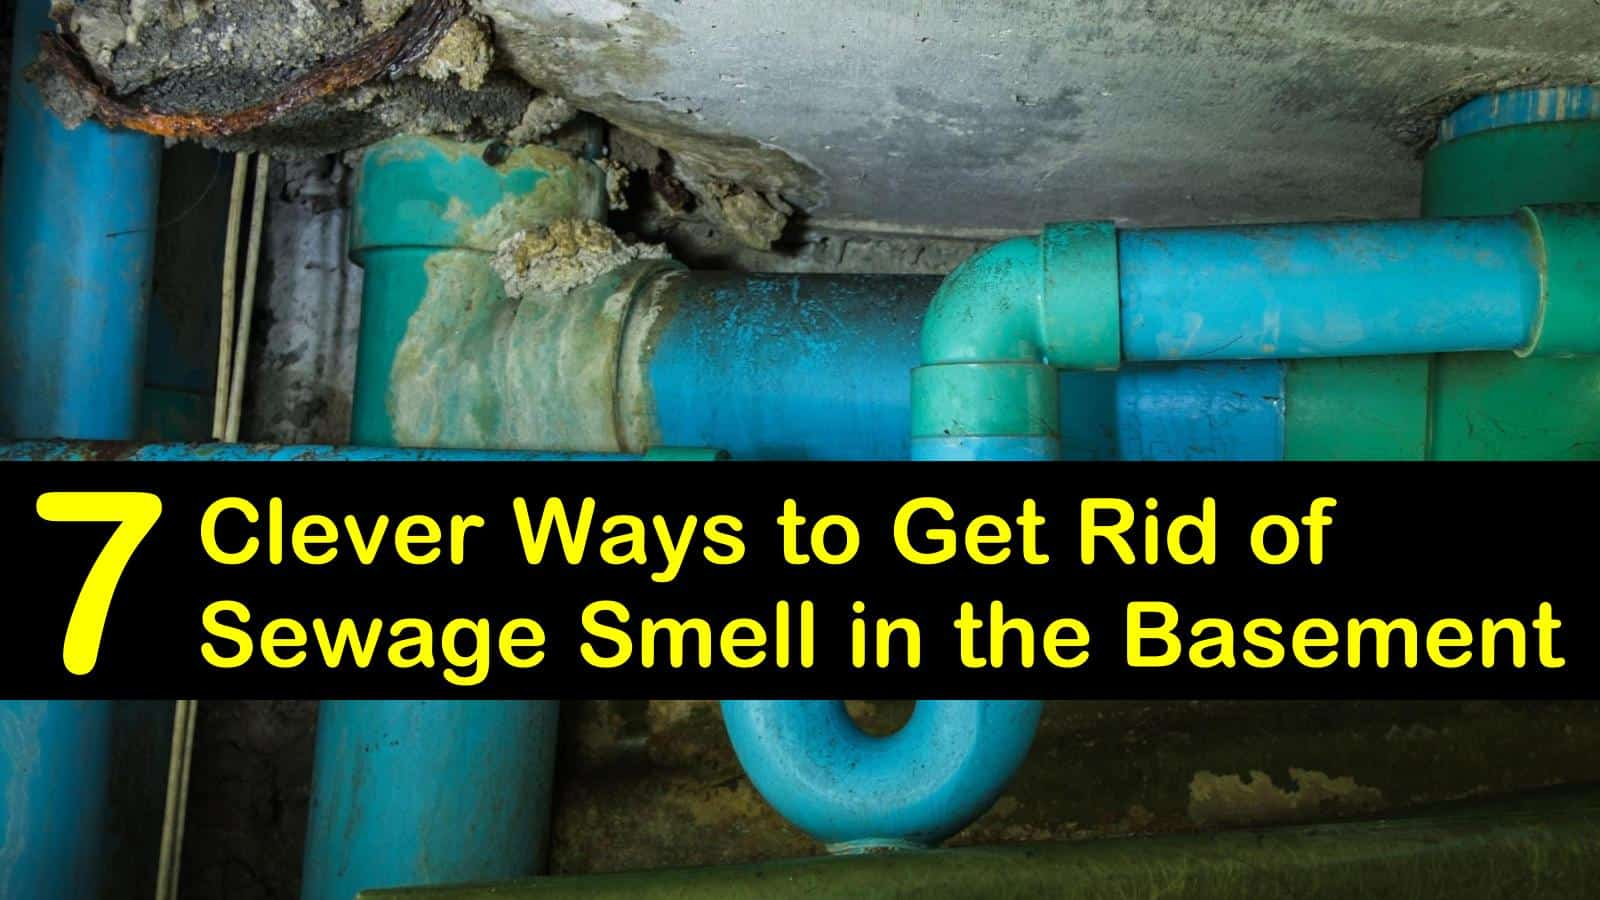 7 Clever Ways To Get Rid Of Sewage Smell In The Basement